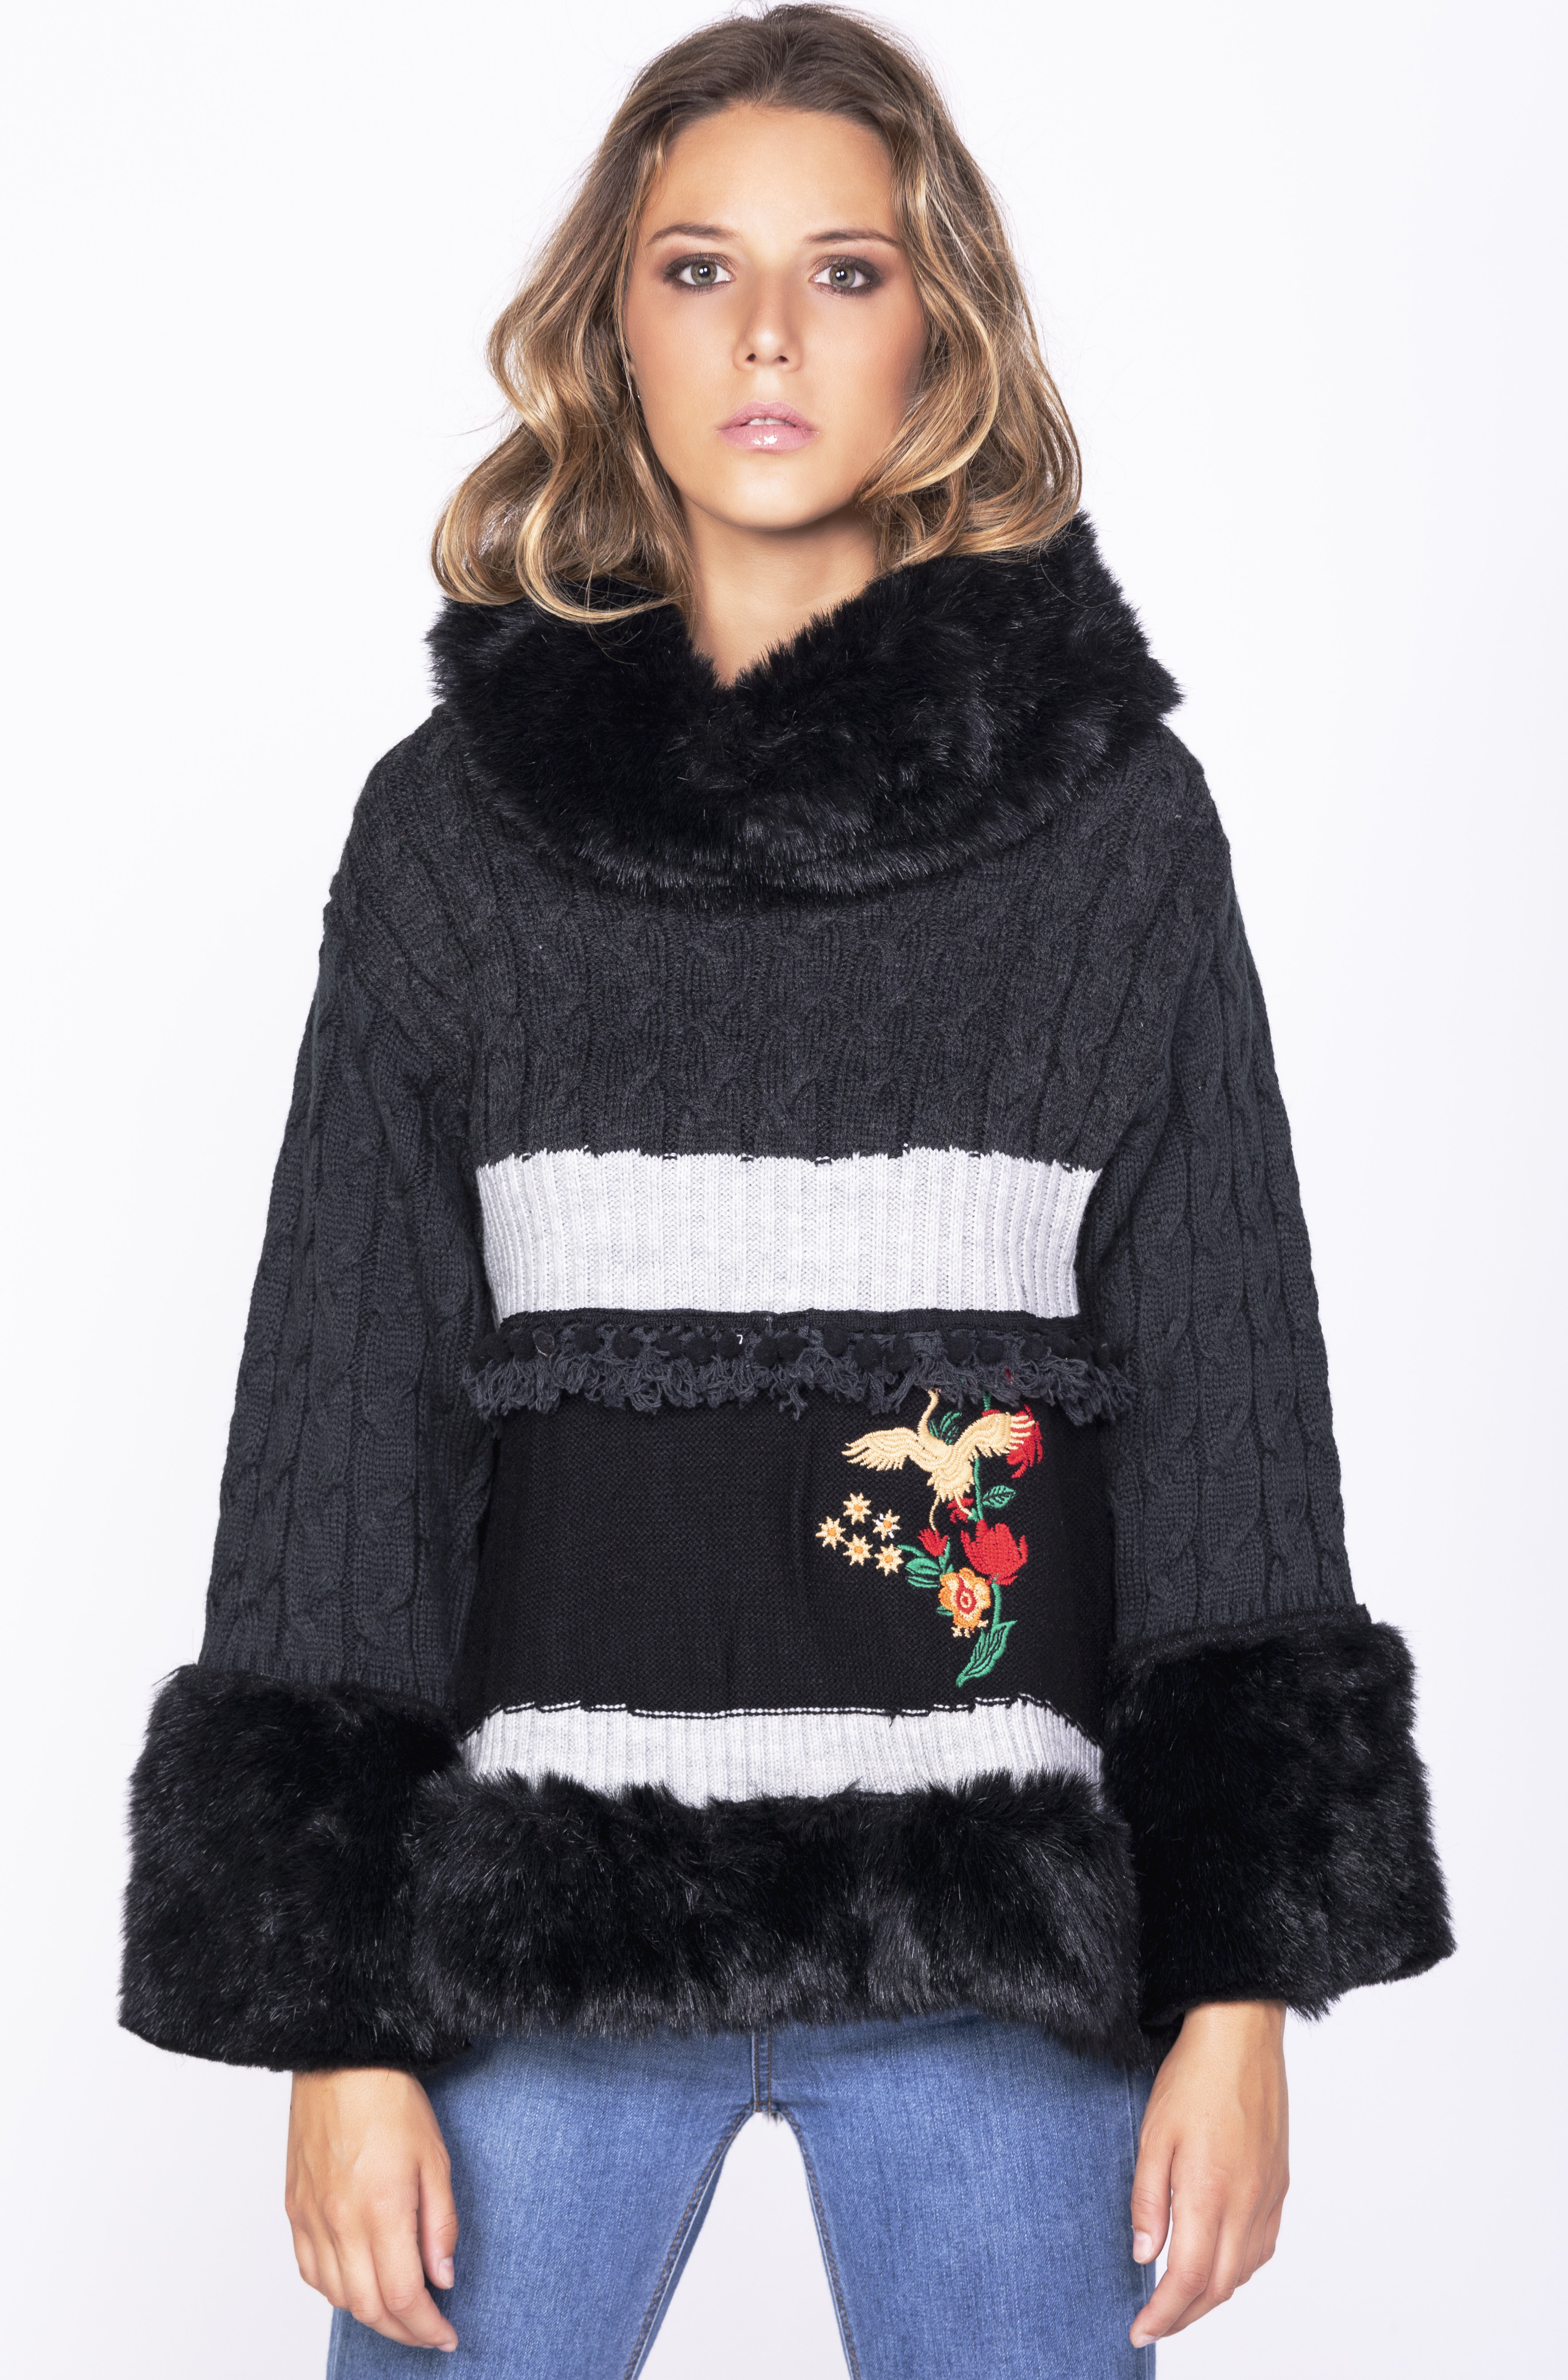 Savage Culture: Little Red Rose Embroidered Faux Fur Sweater Rostov SAVAGE_35050